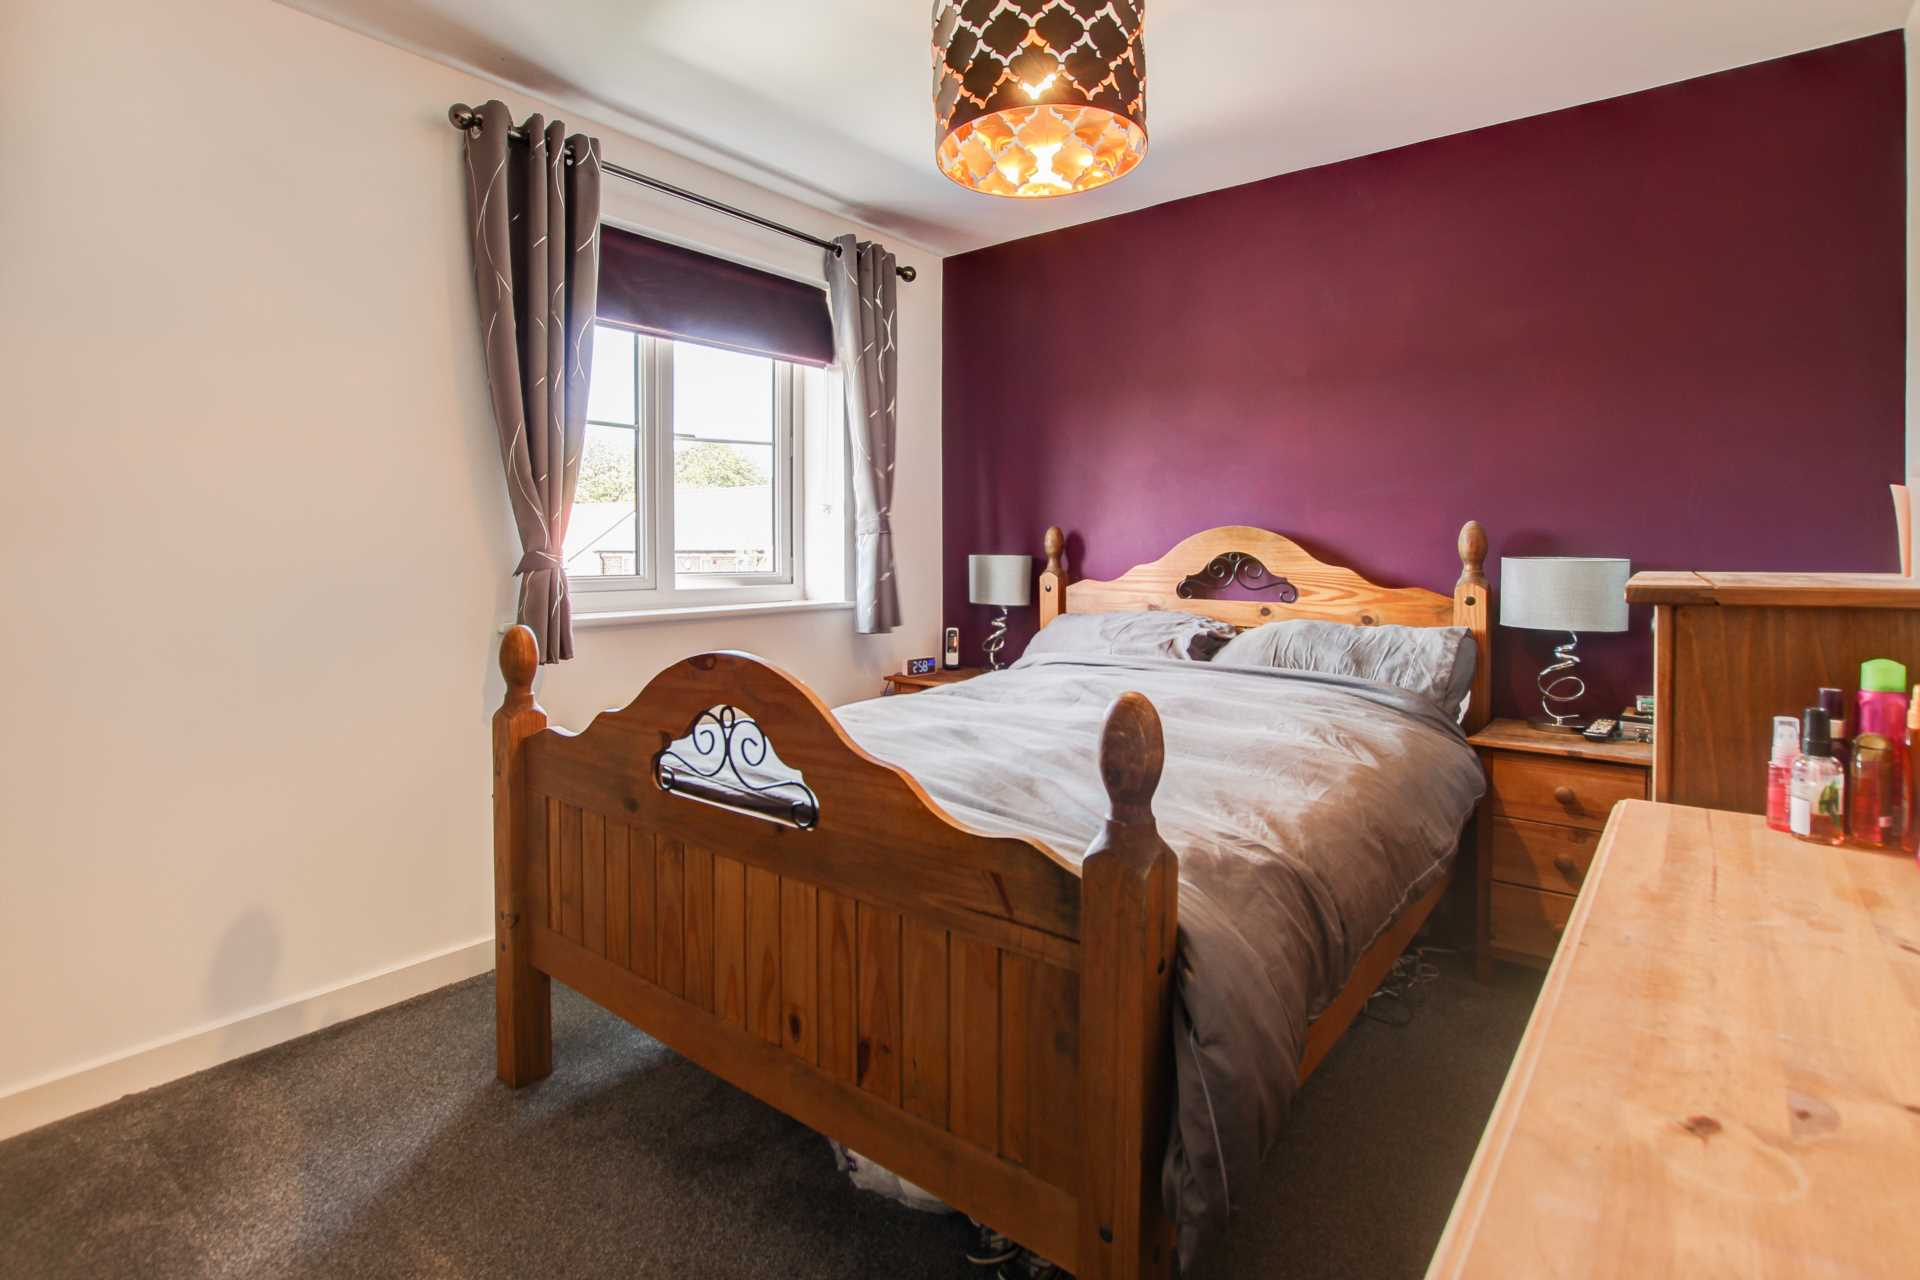 3 bed semi-detached house for sale in Esme Avenue, Blandford St Mary, Blandford Forum 6